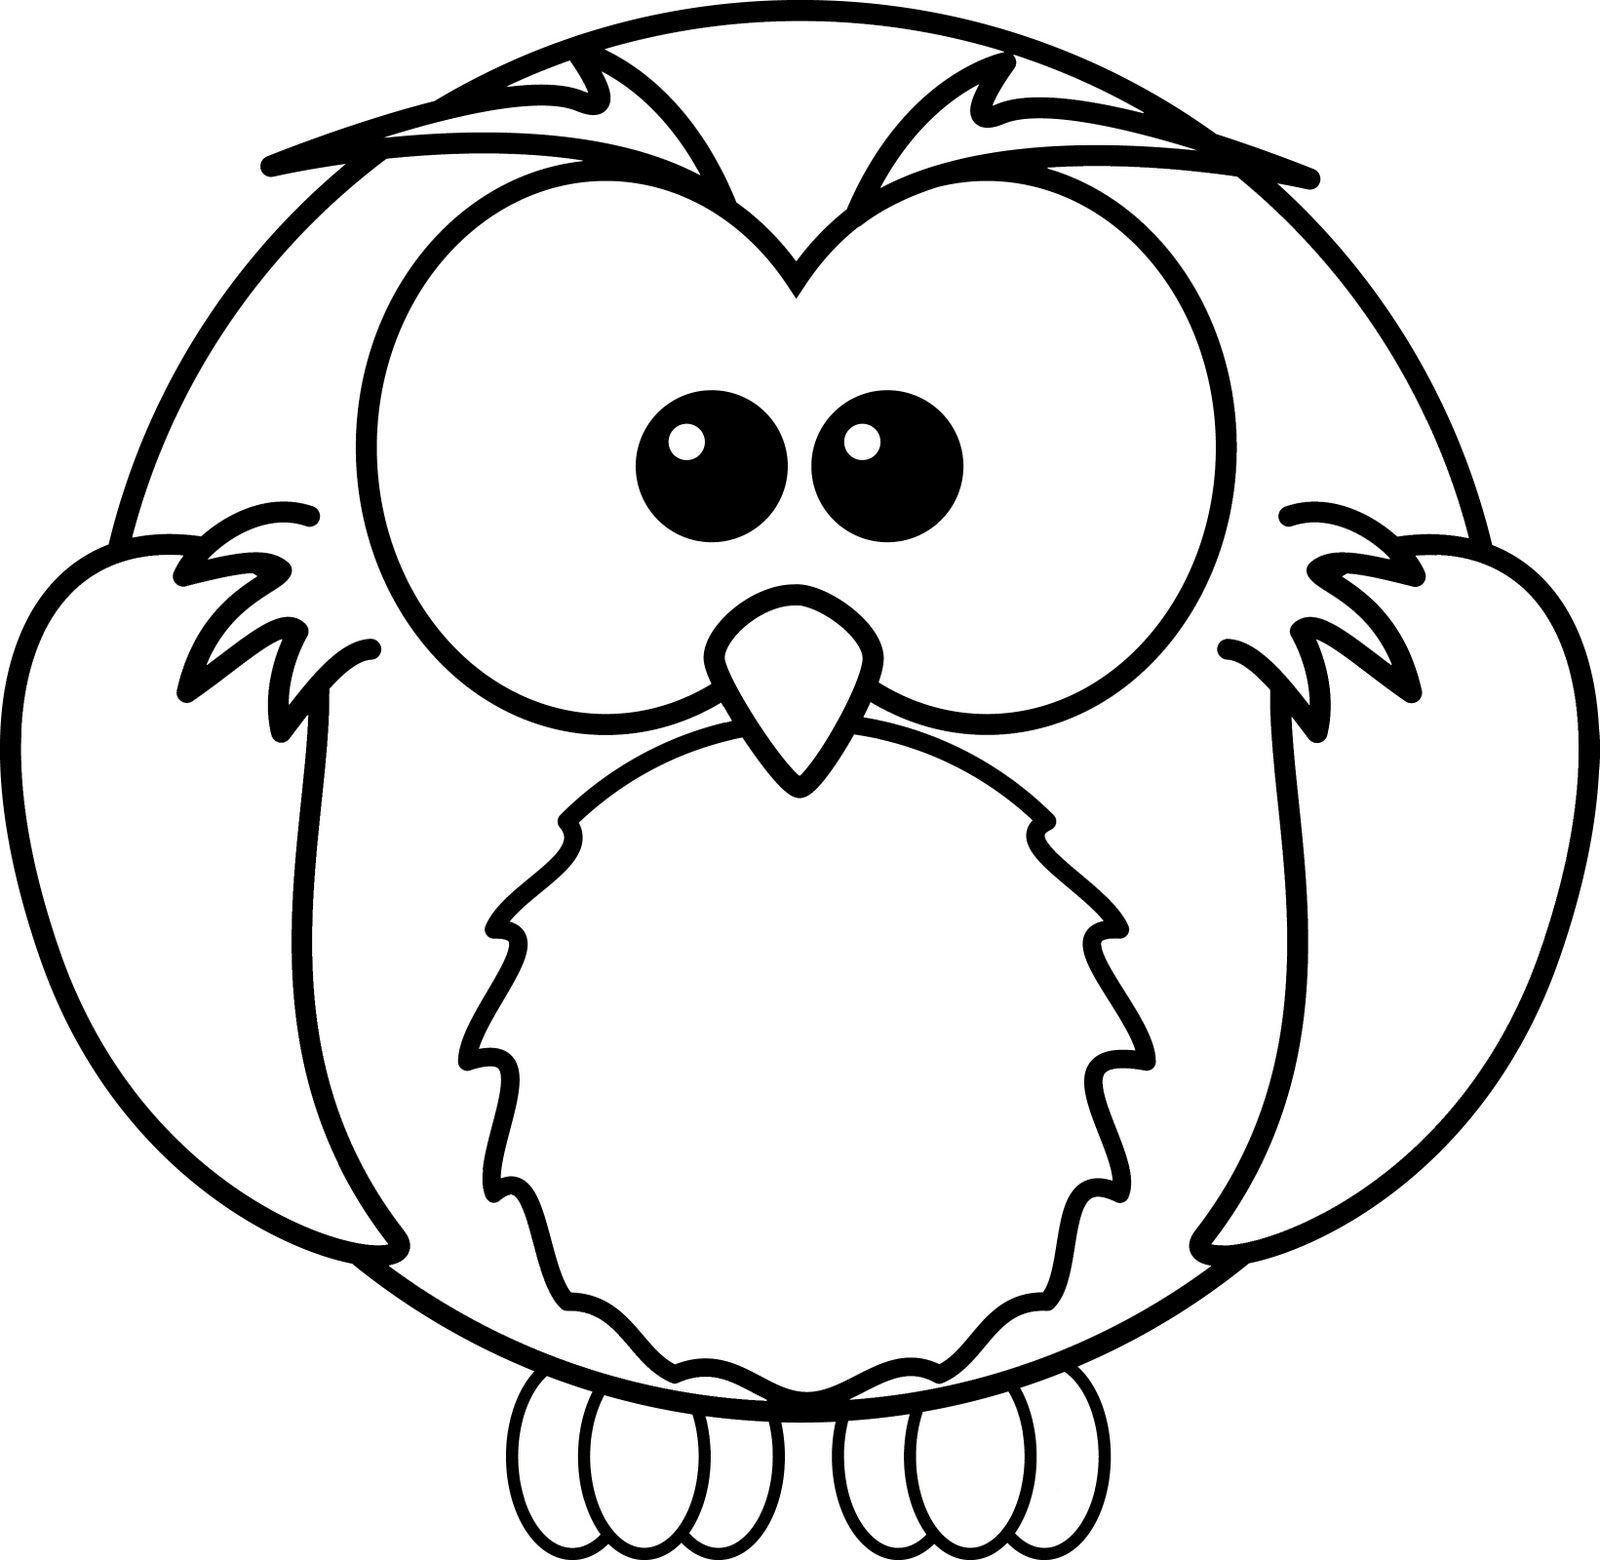 owl coloring pics owl coloring pages for adults free detailed owl coloring coloring pics owl